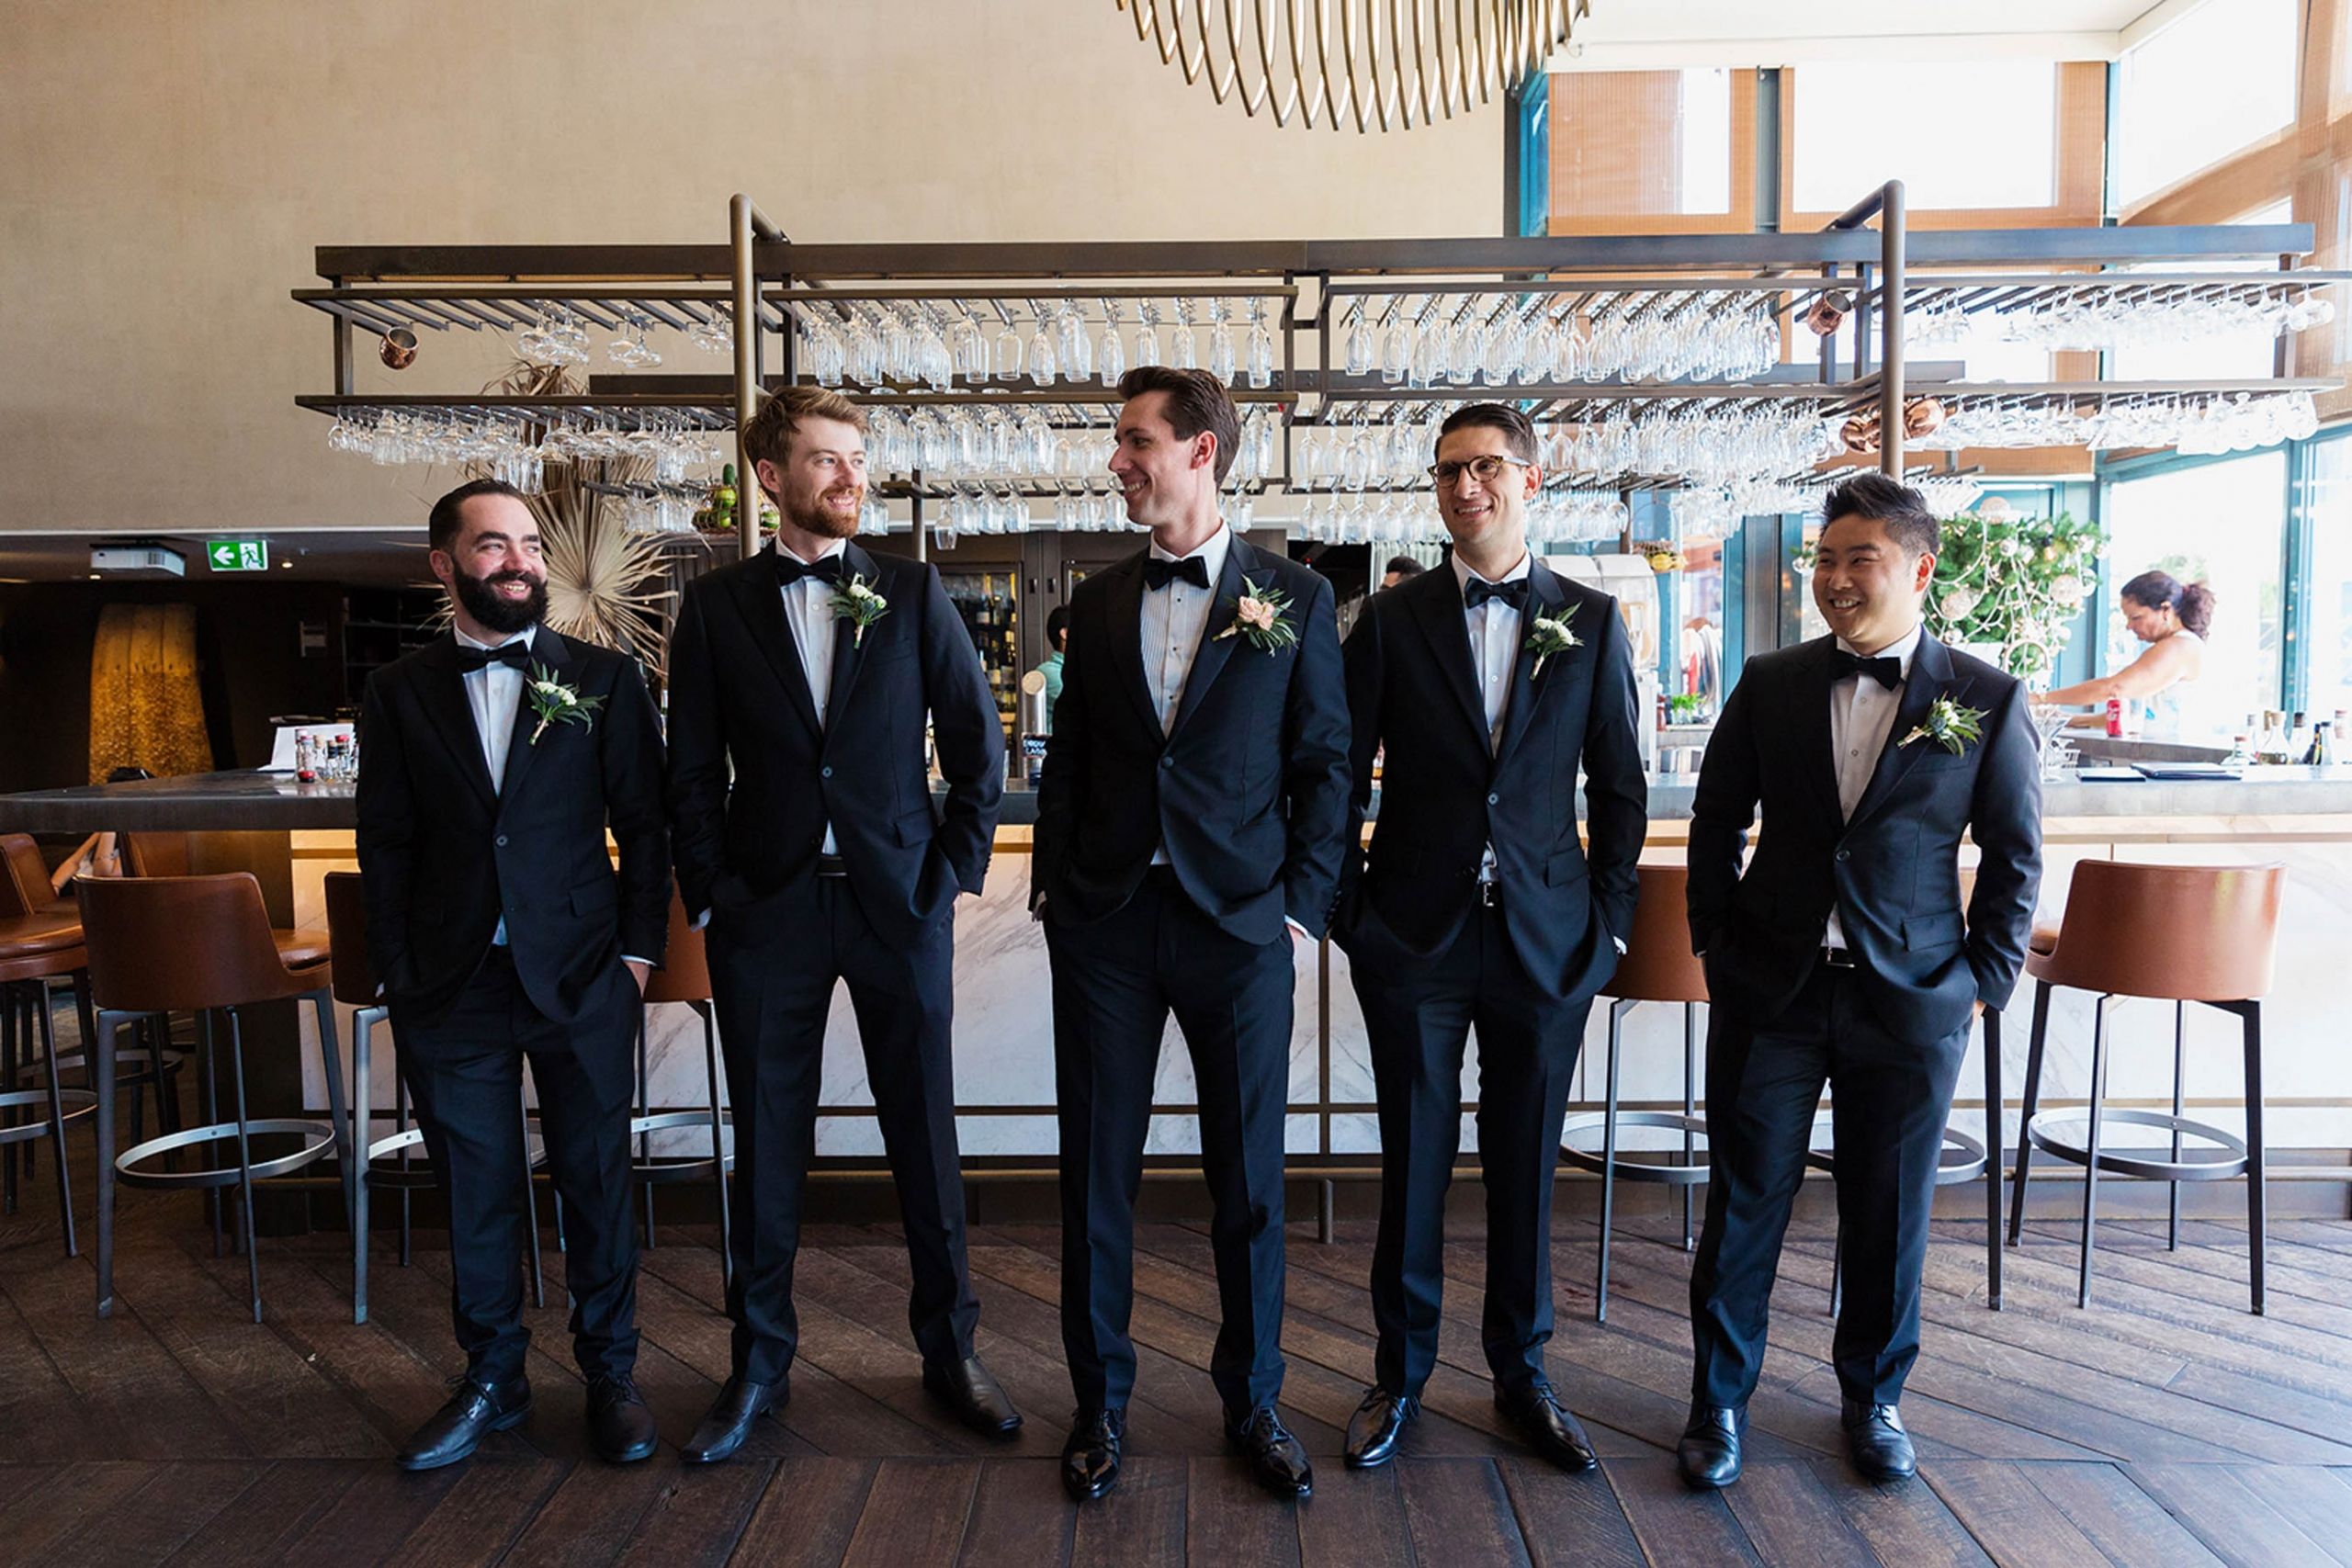 Groom, Daniel with his groomsmen at his Sydney wedding.